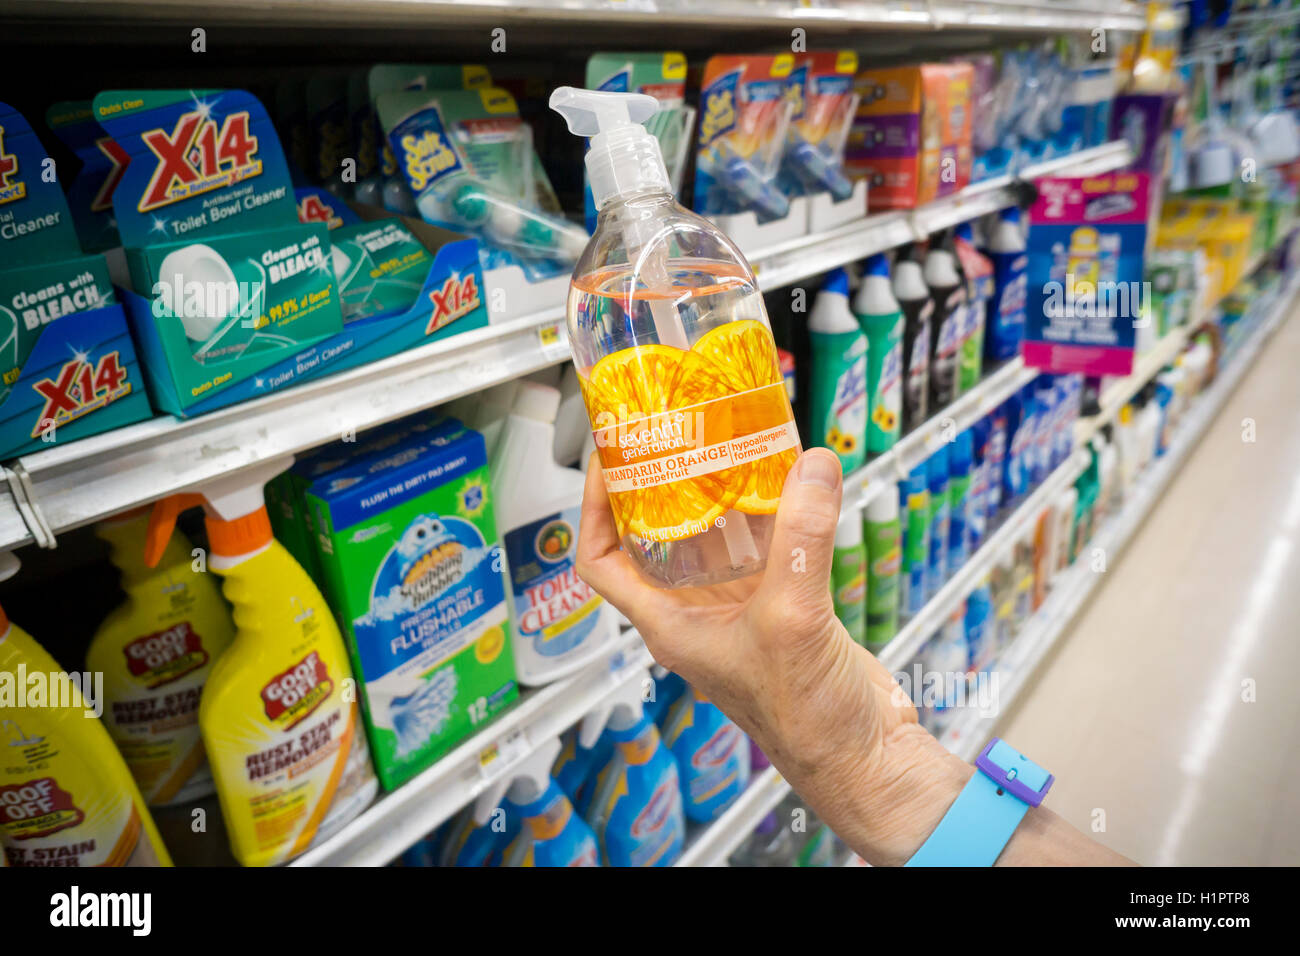 A shopper chooses a bottle of Seventh Generation brand disinfecting hand soap on a supermarket shelf in New York - Stock Image